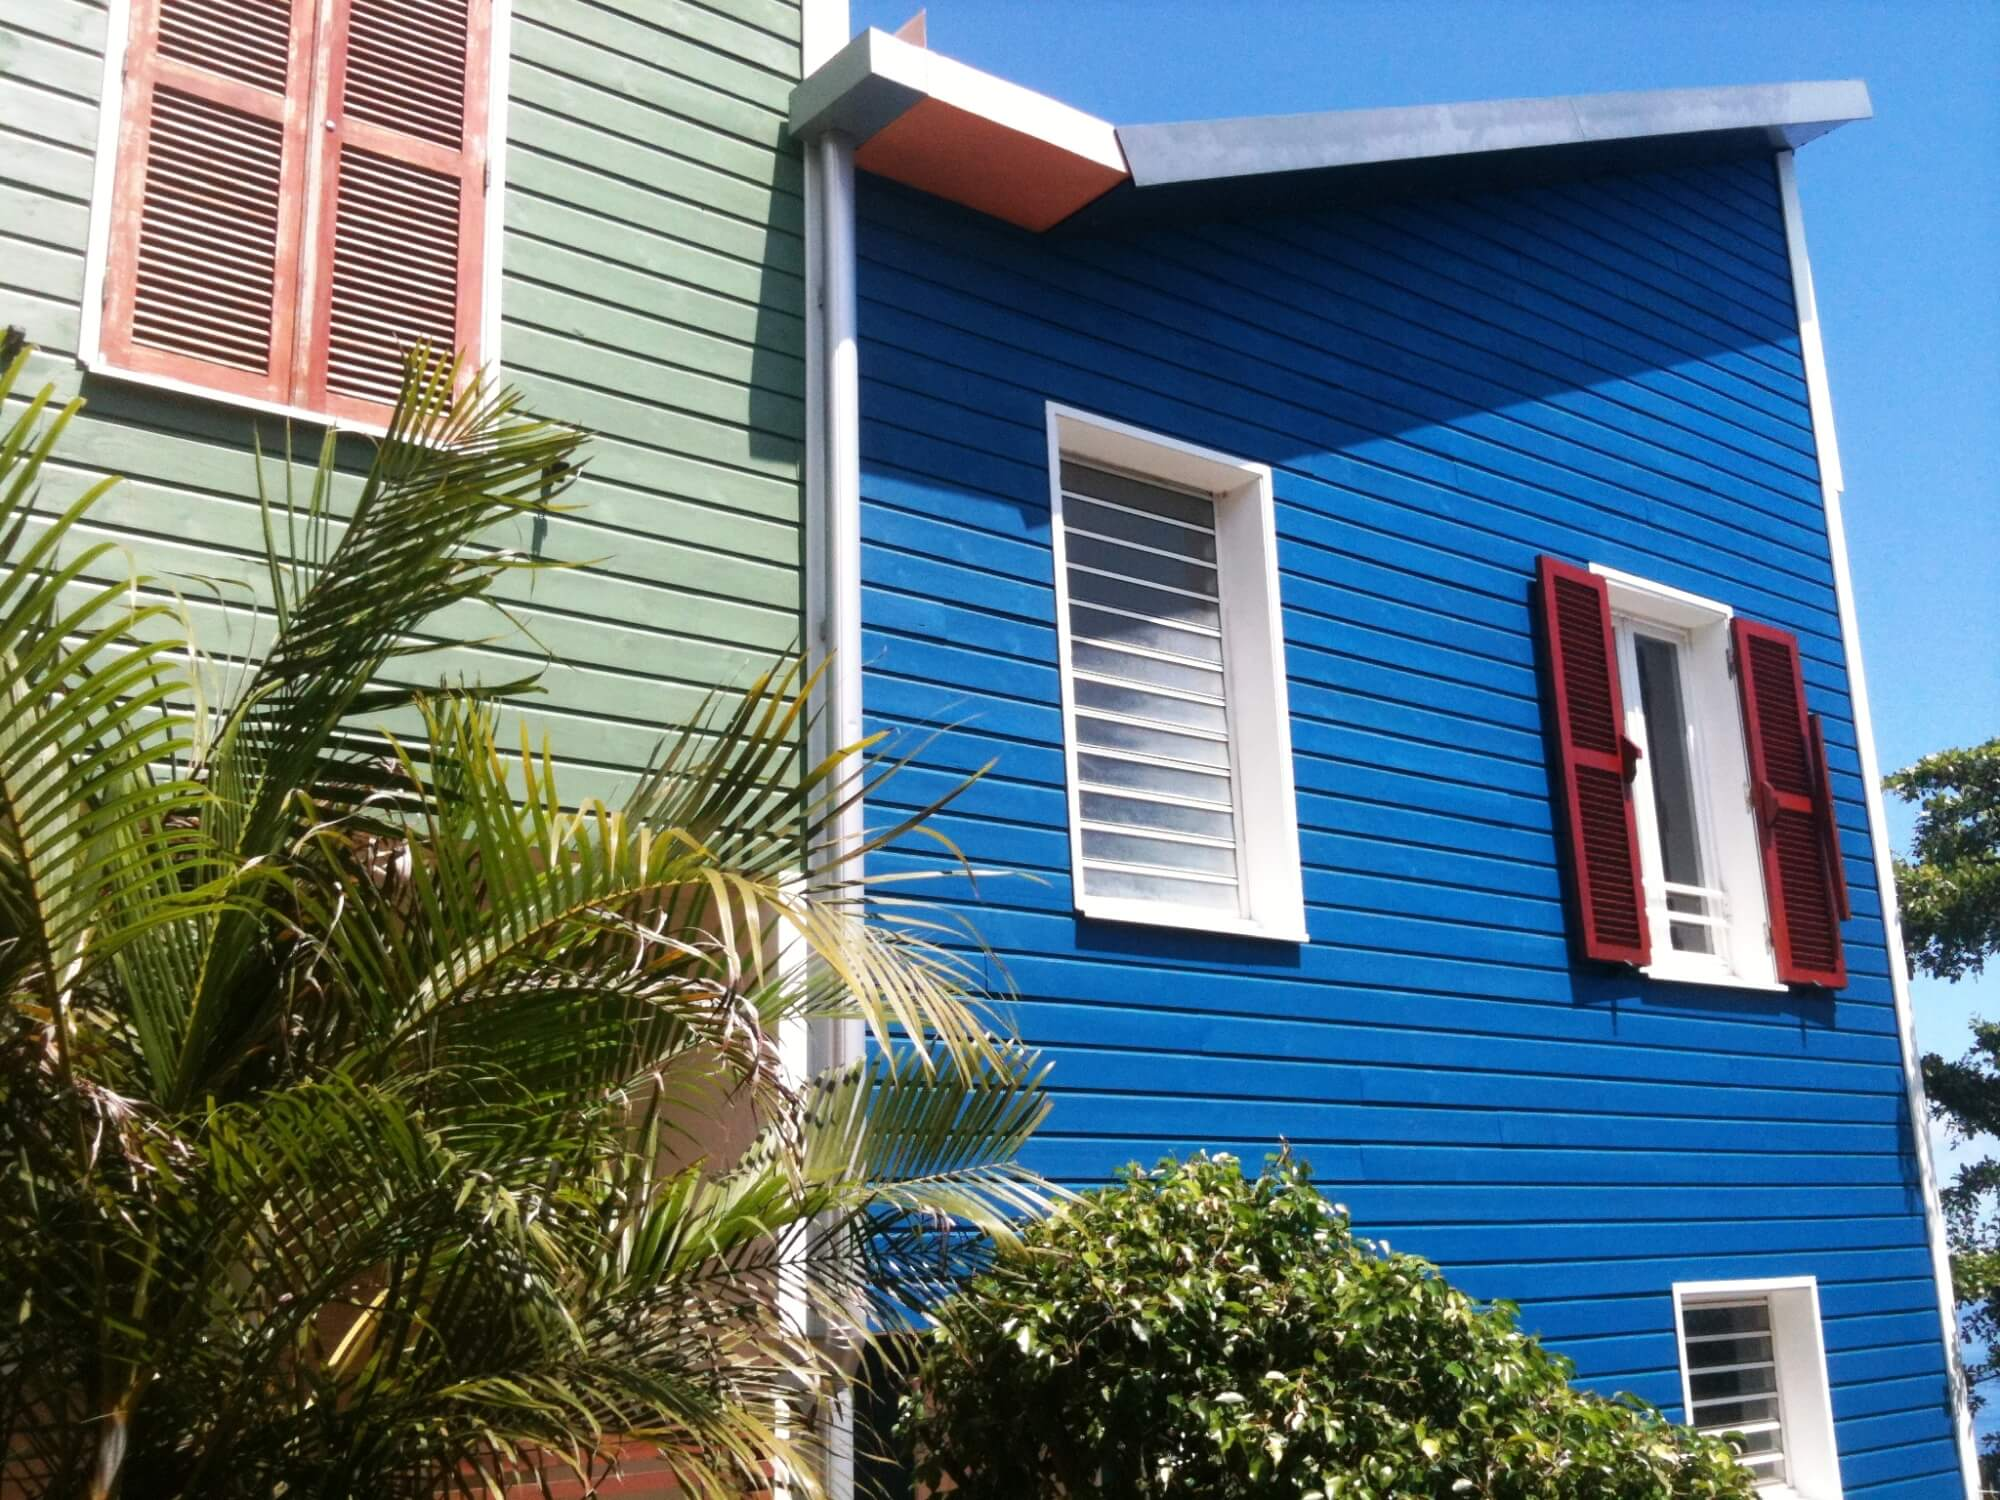 Color blue and green siding on condos.